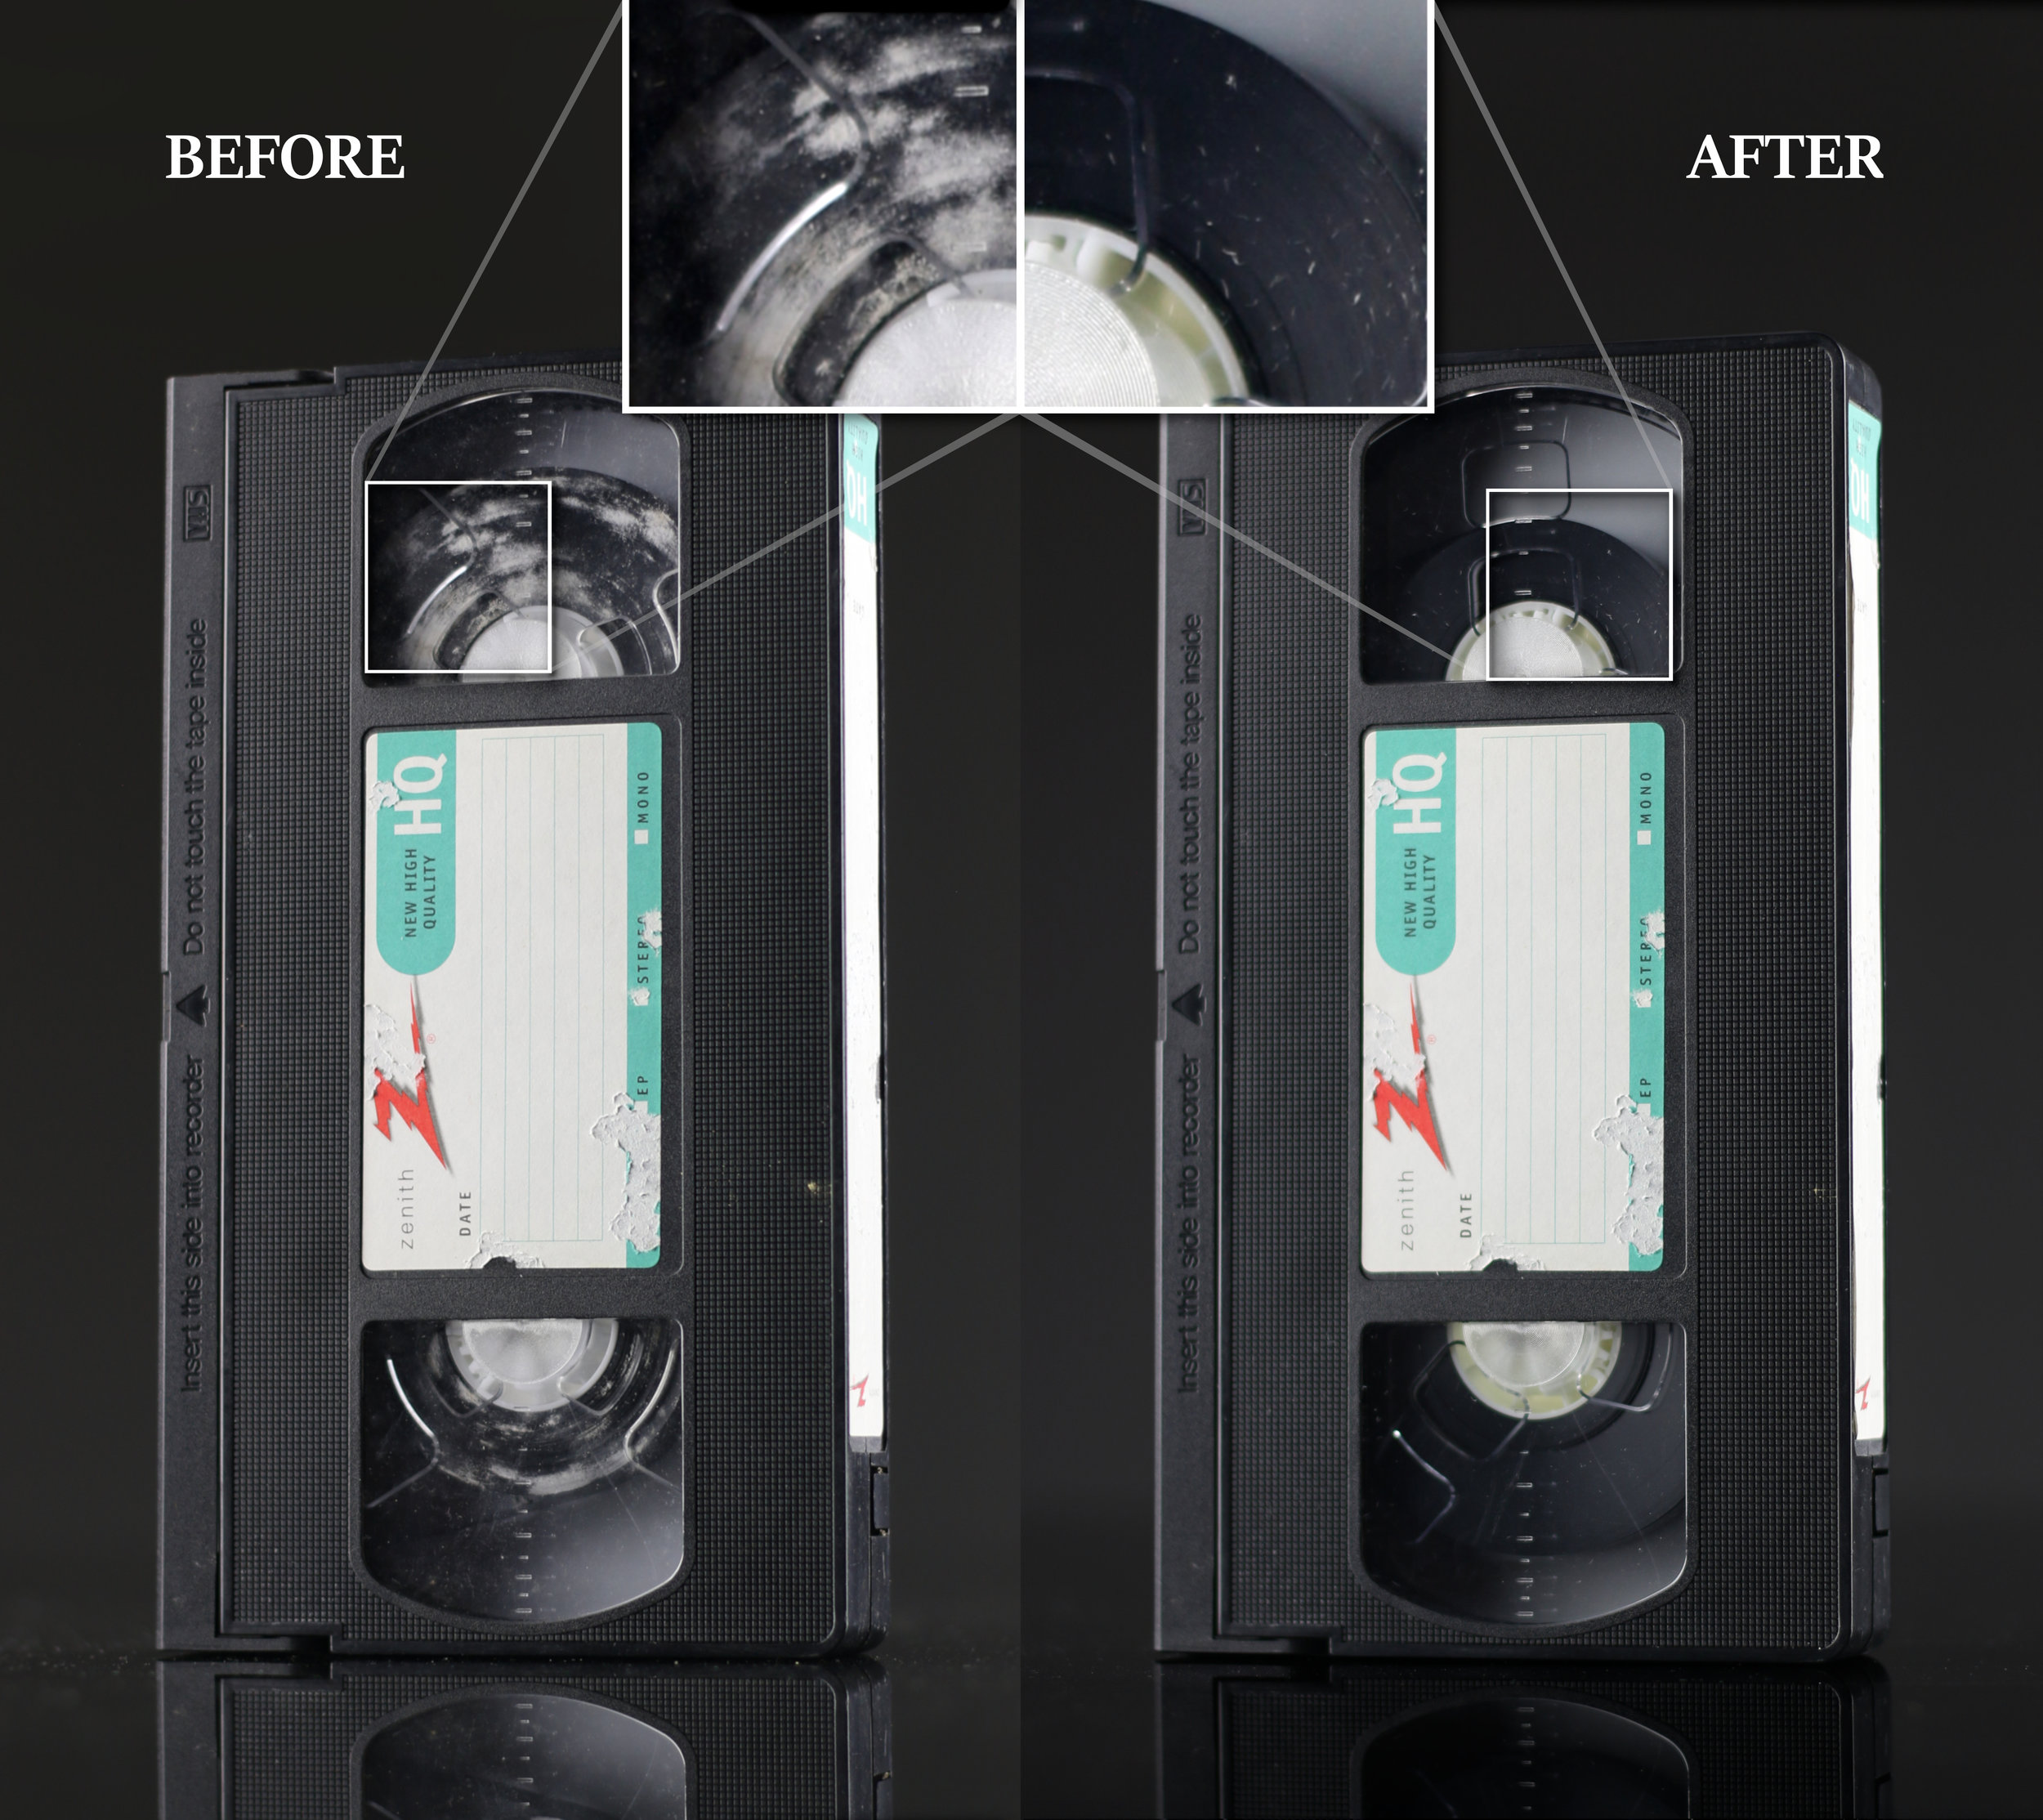 Mold Removal - Your tapes may have mold on them due to humidity and heat. We use specialized machines to clean your tapes and prepare them for transferring.